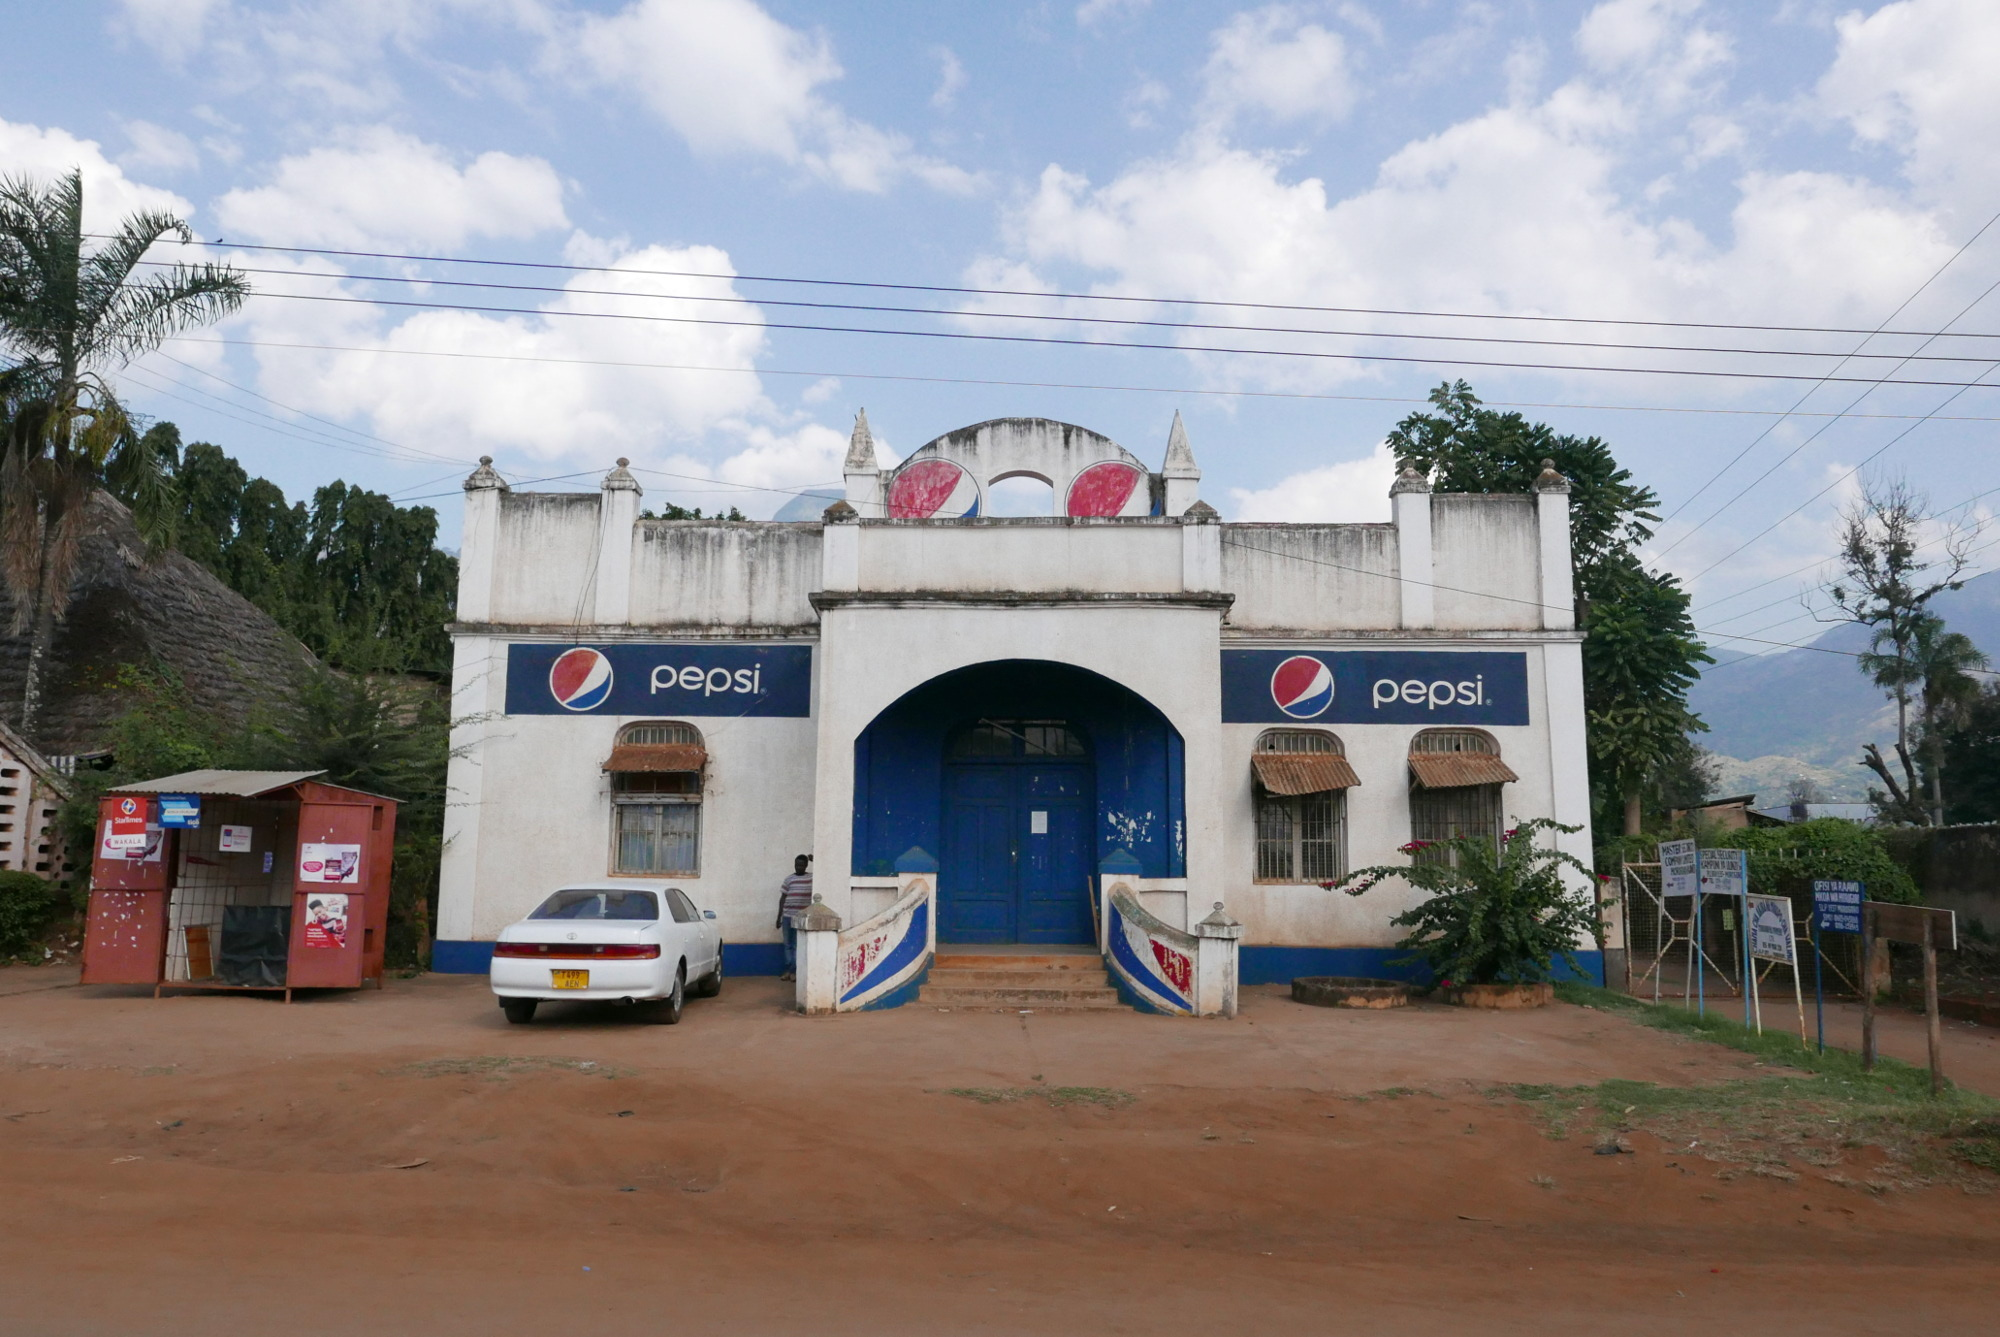 The temple of Pepsi, Station Road, Morogoro